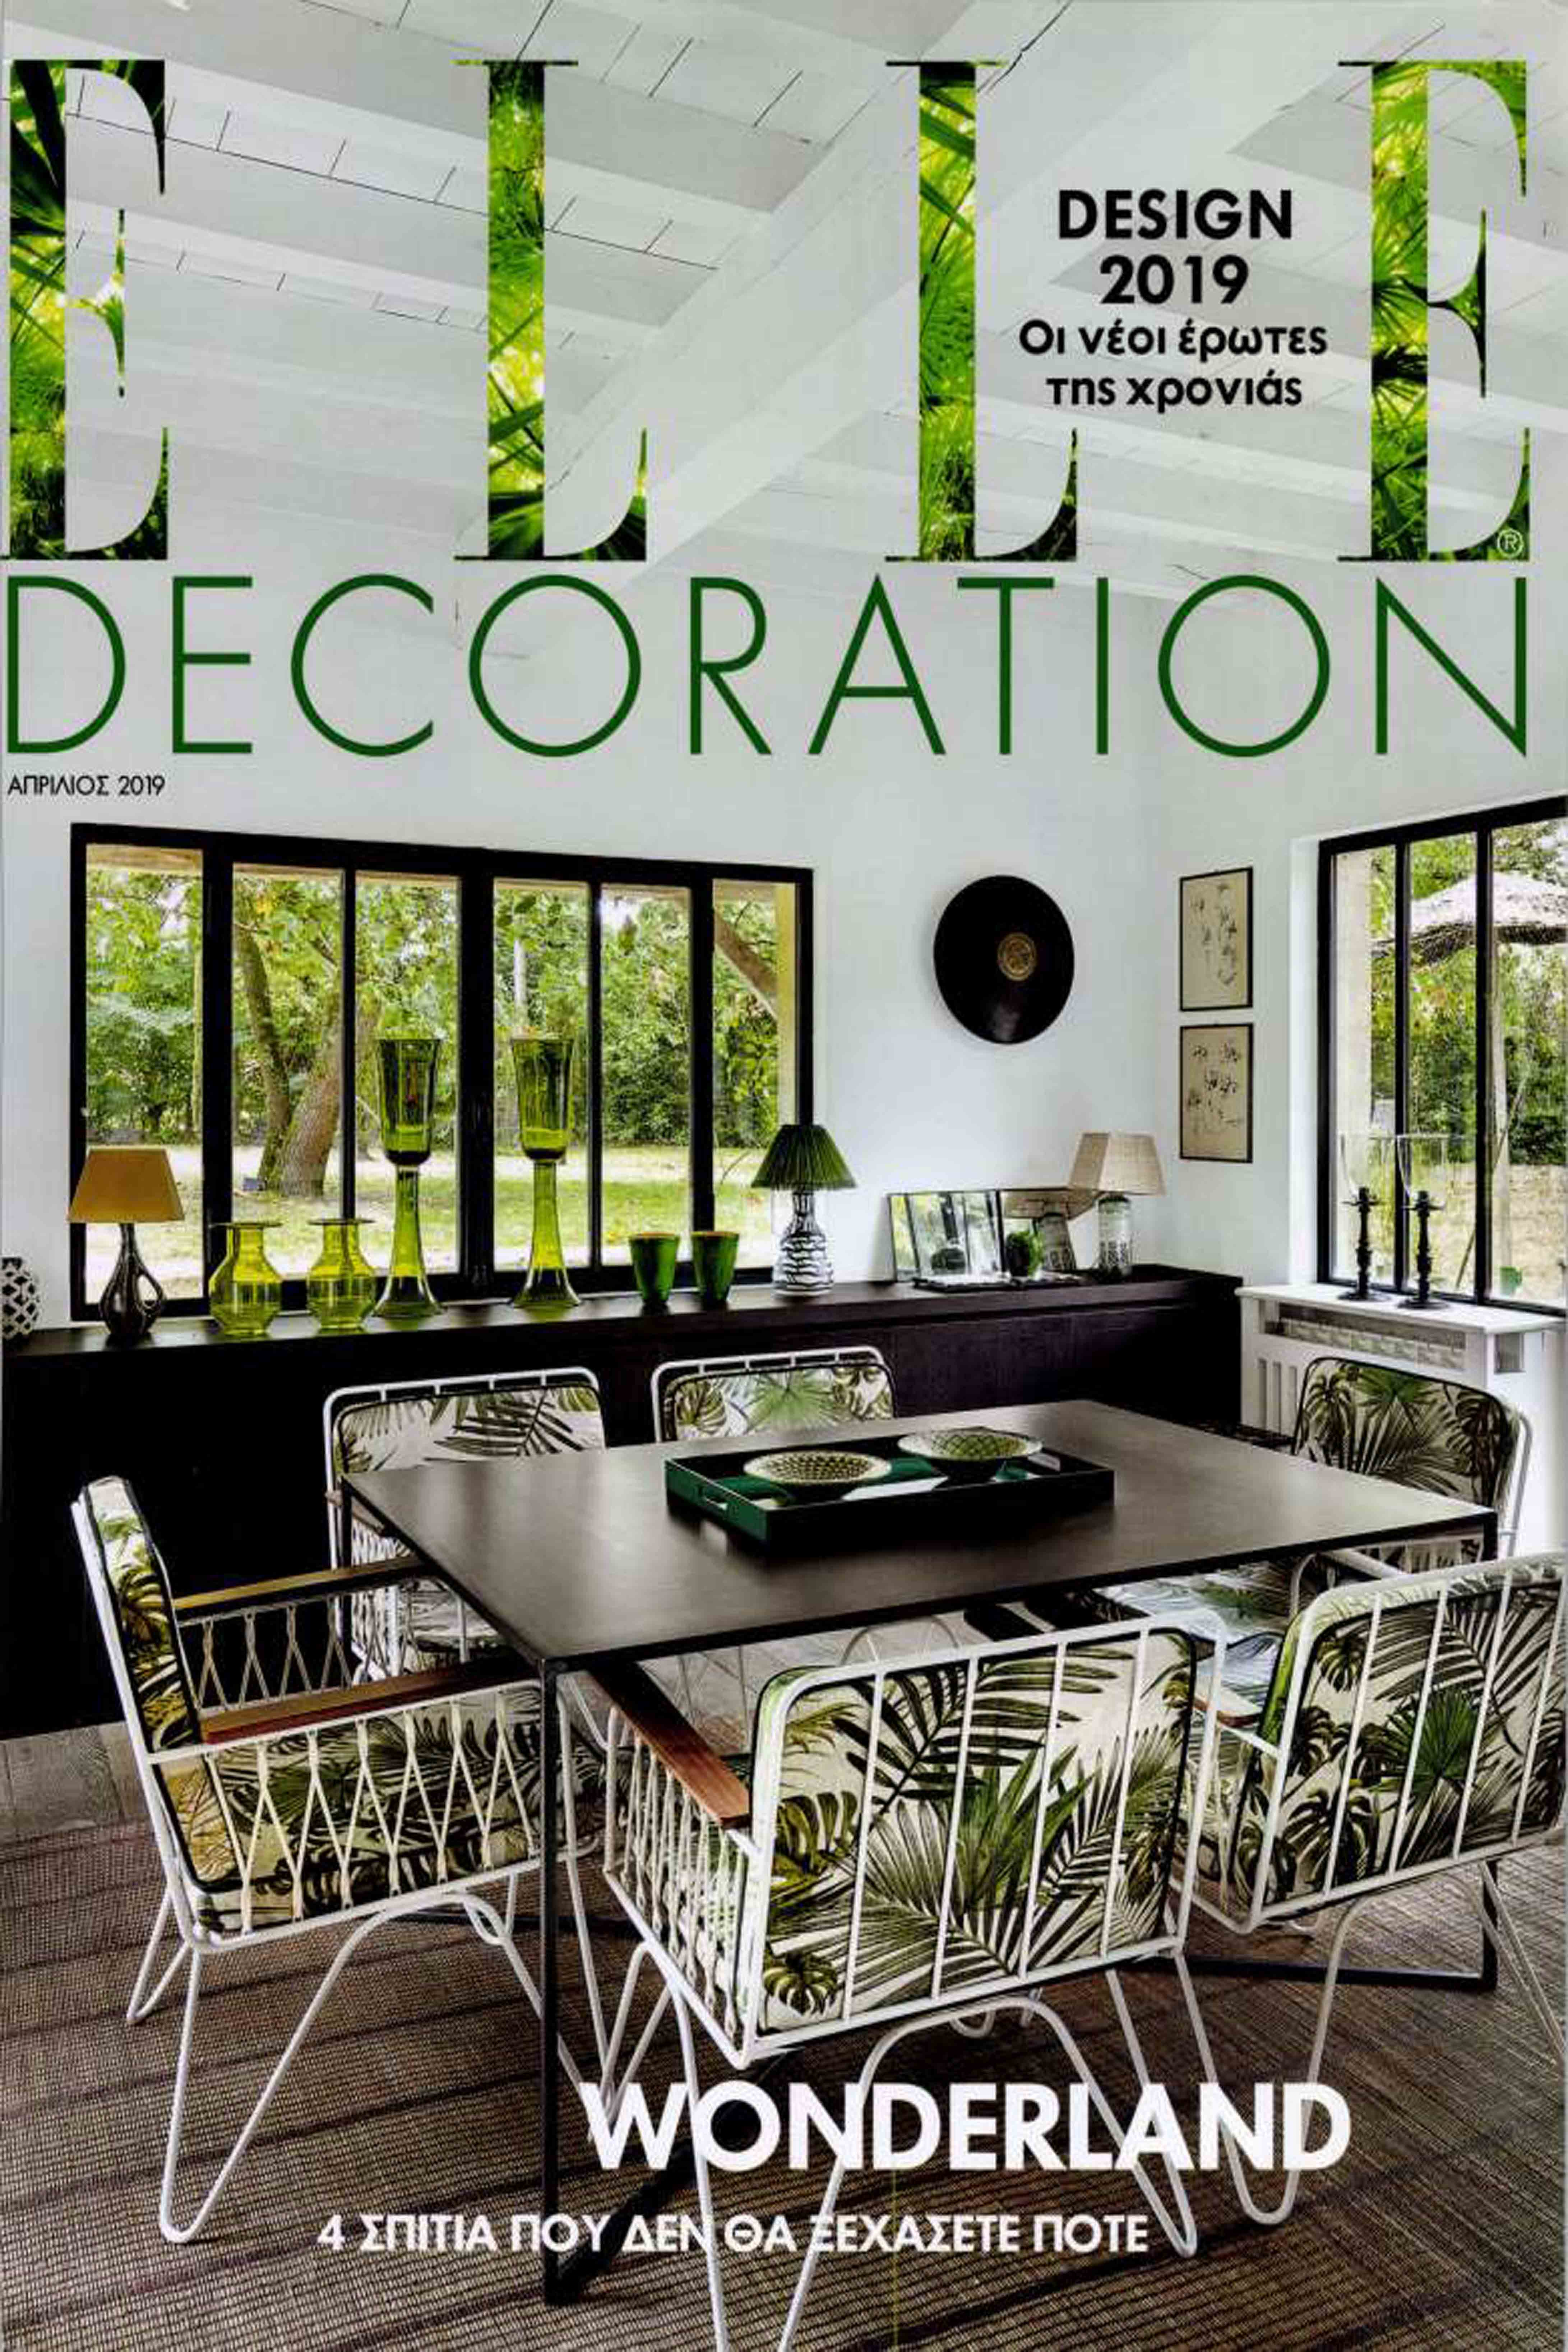 Elle Decoration GRE 2019-4-1